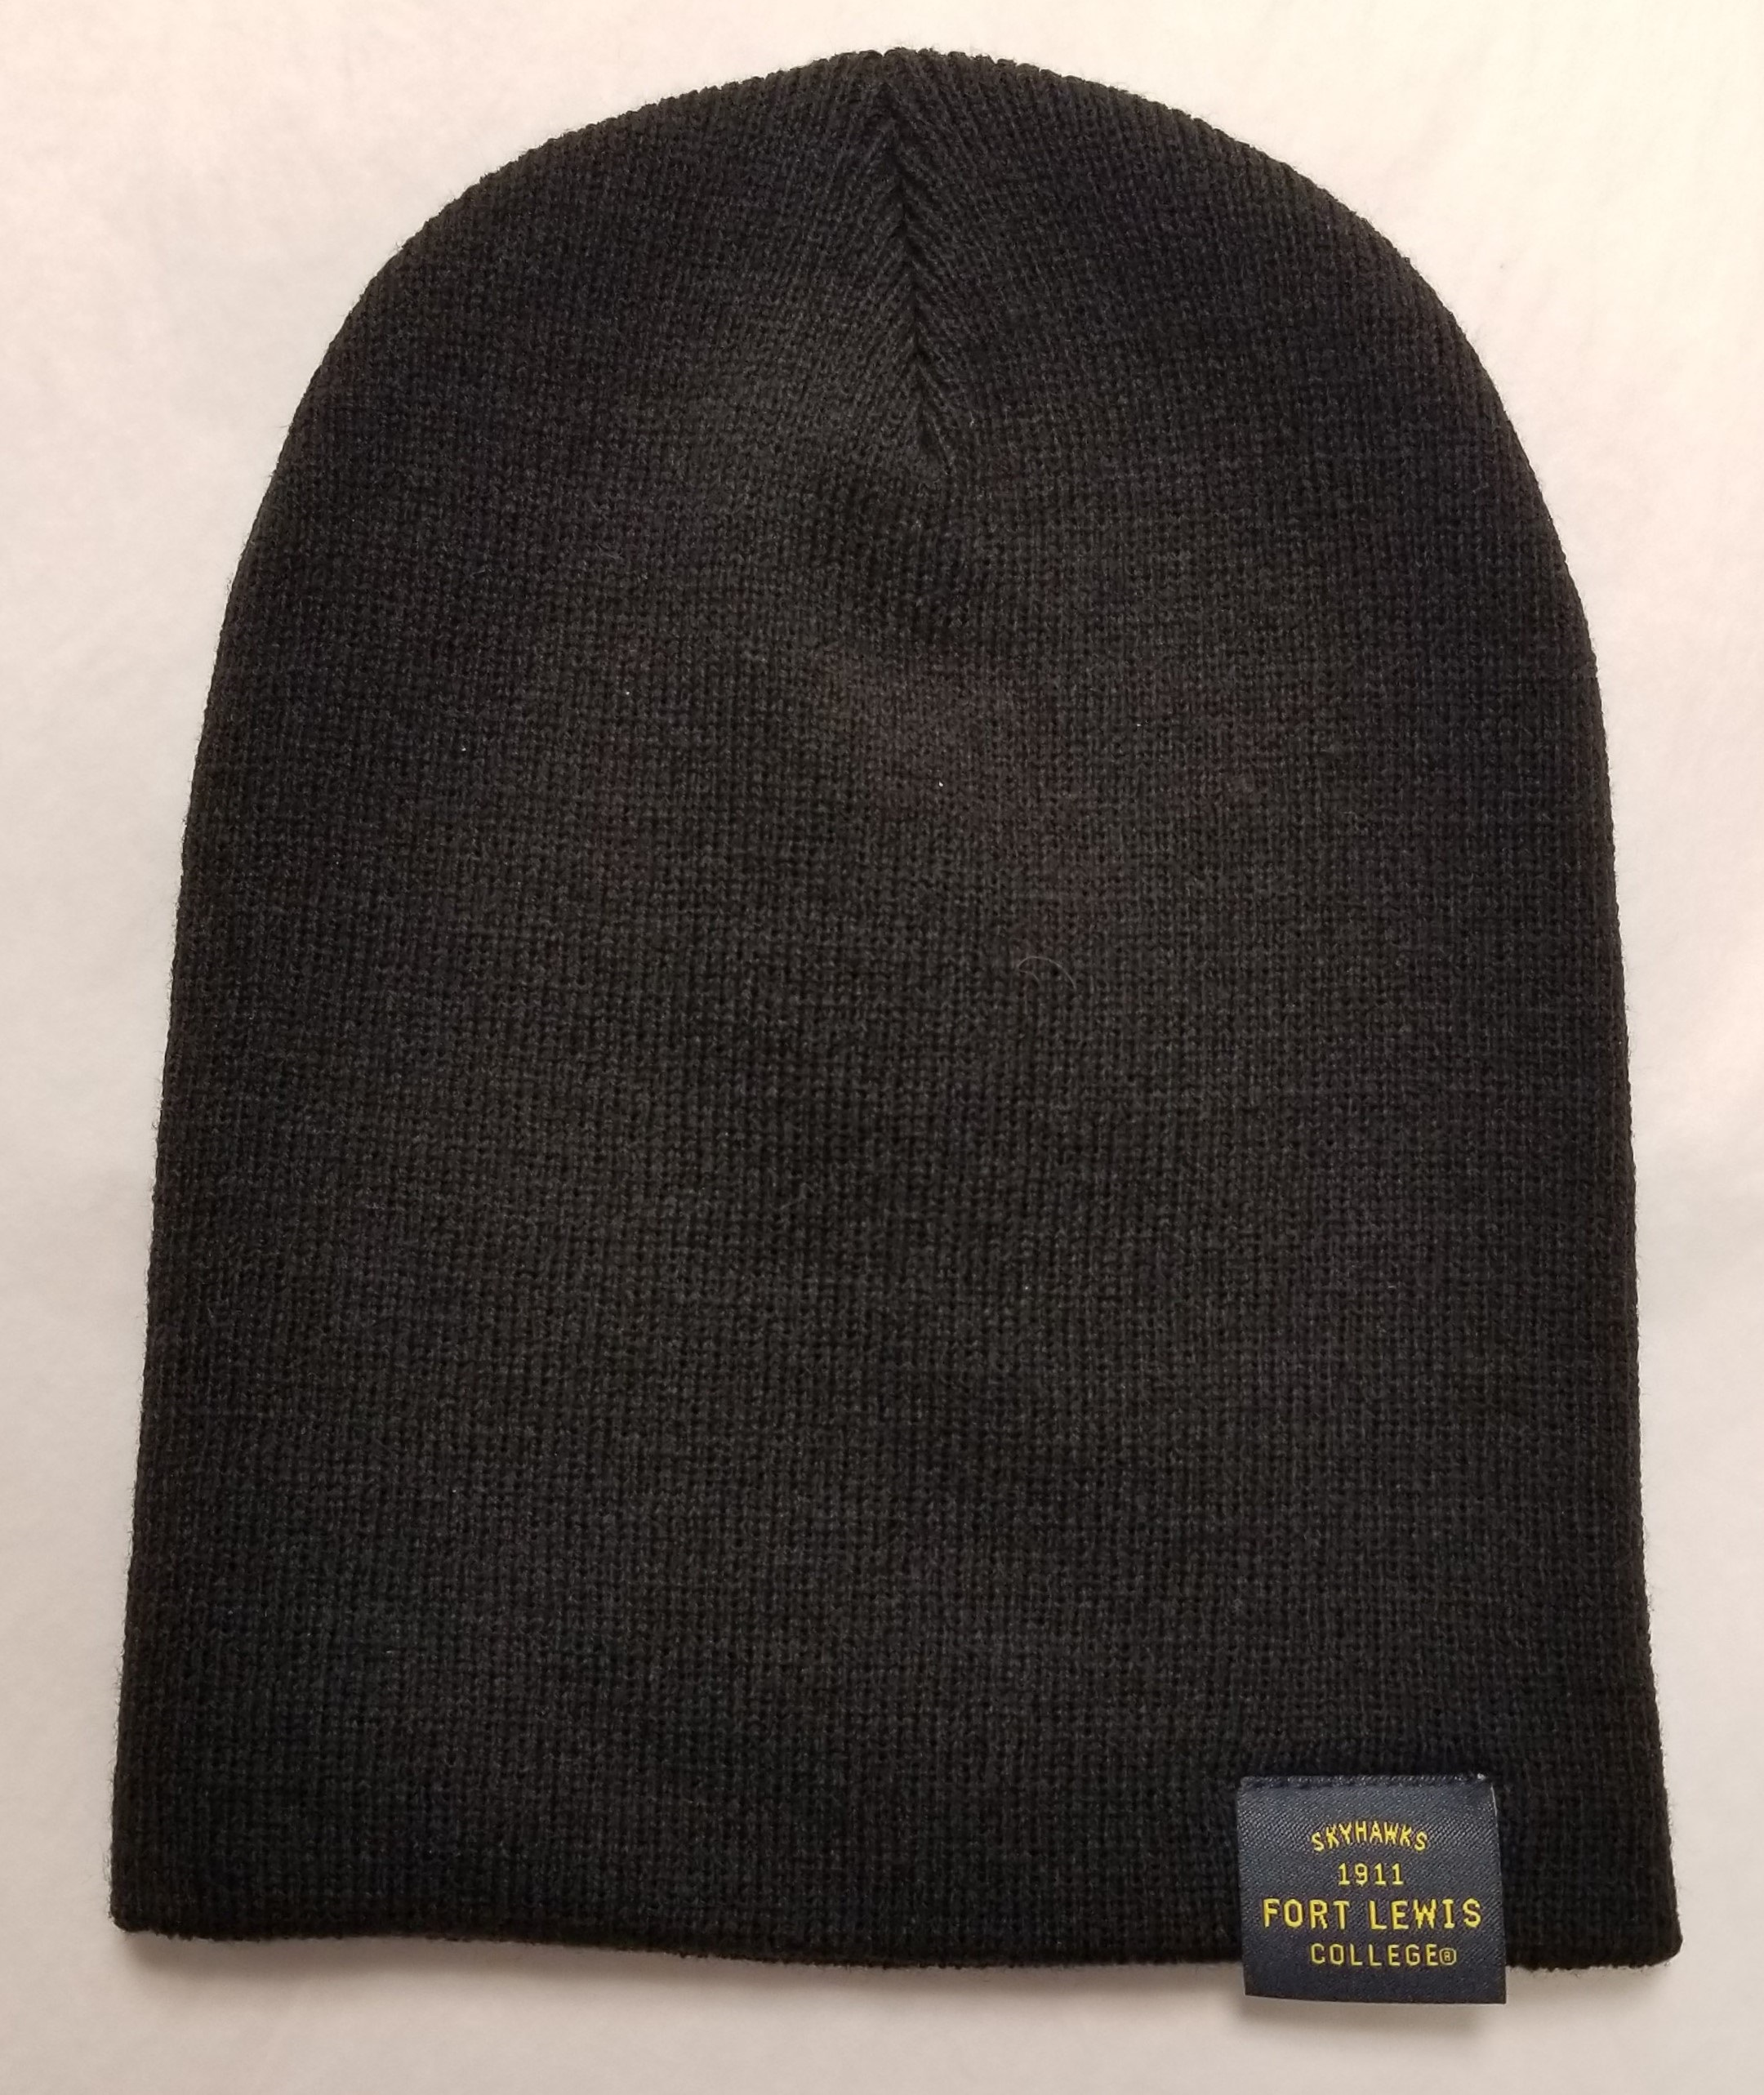 Fort Lewis College Beanies